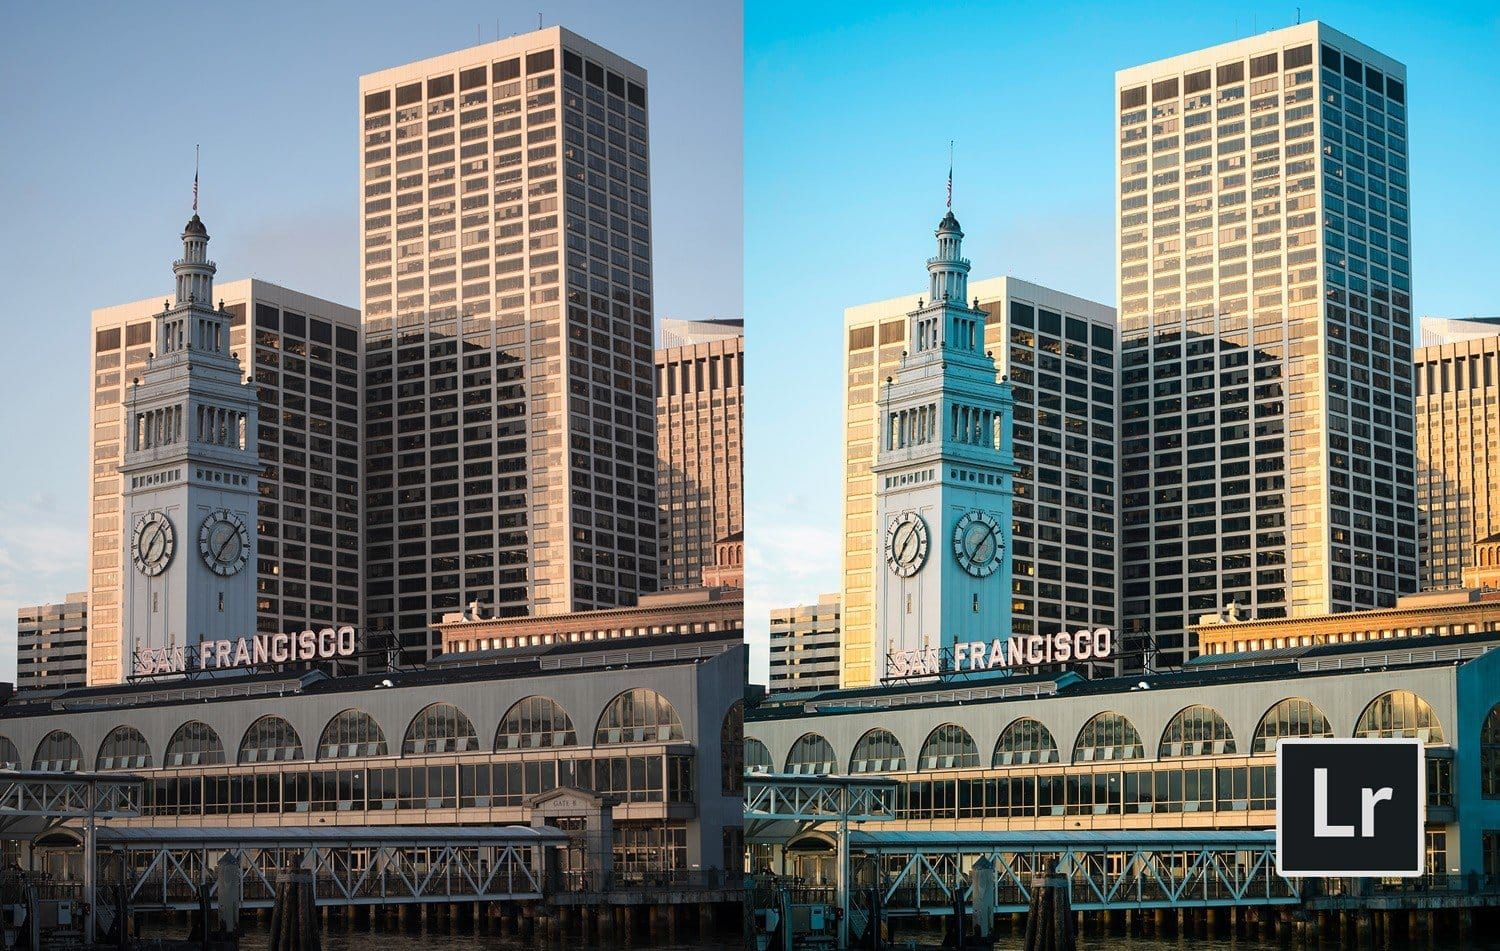 Free-Lightroom-Preset-City-Block-Before-and-After-Presetpro.com